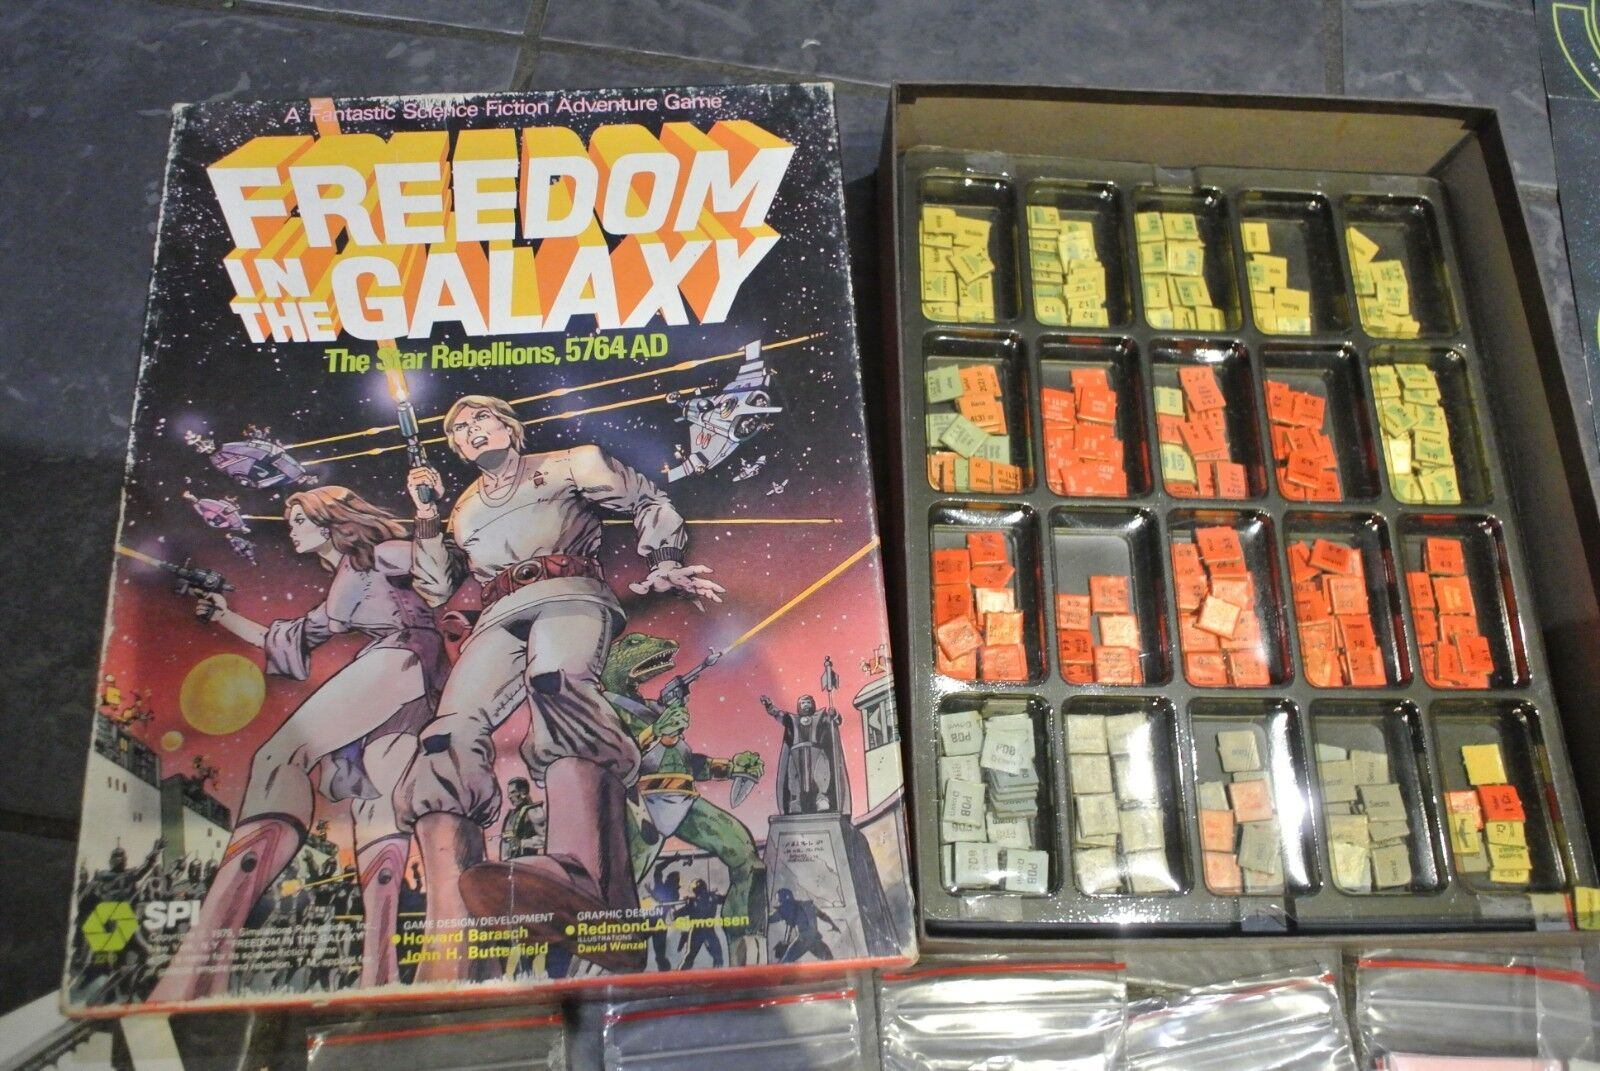 Rare Vintage SPI game FREEDOM GALAXY The Star Rebellions 5764 AD